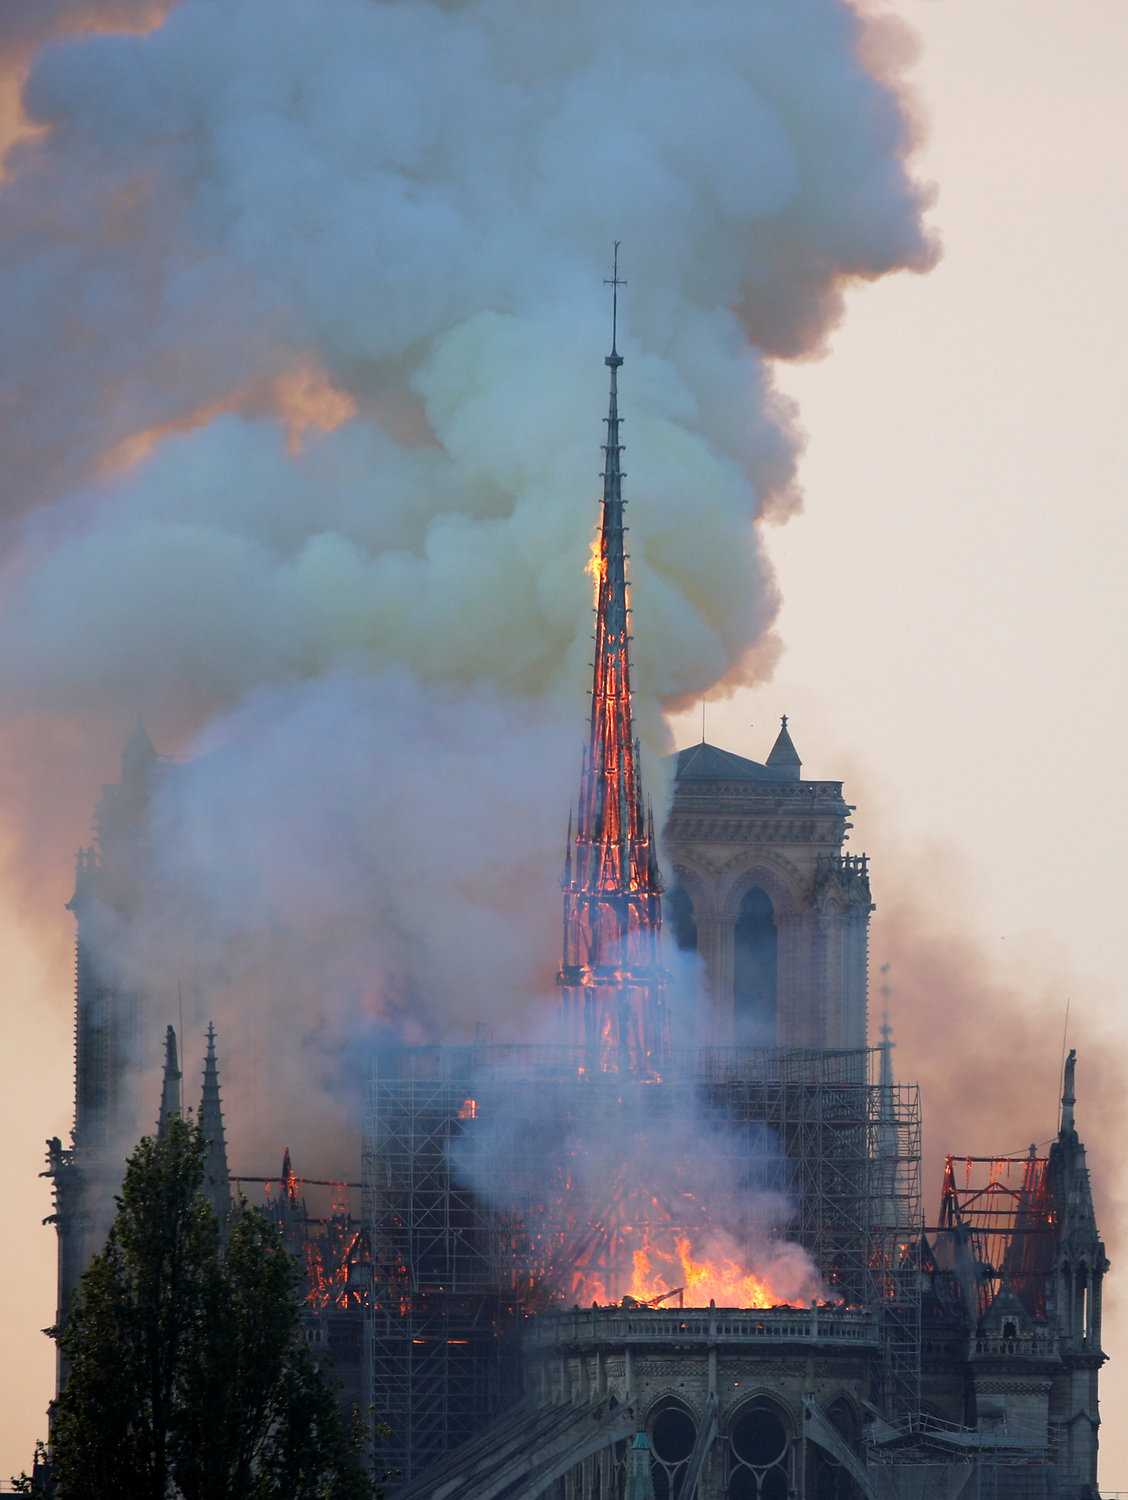 Flames and smoke billow from the Notre Dame Cathedral after a fire broke out in Paris April 15.